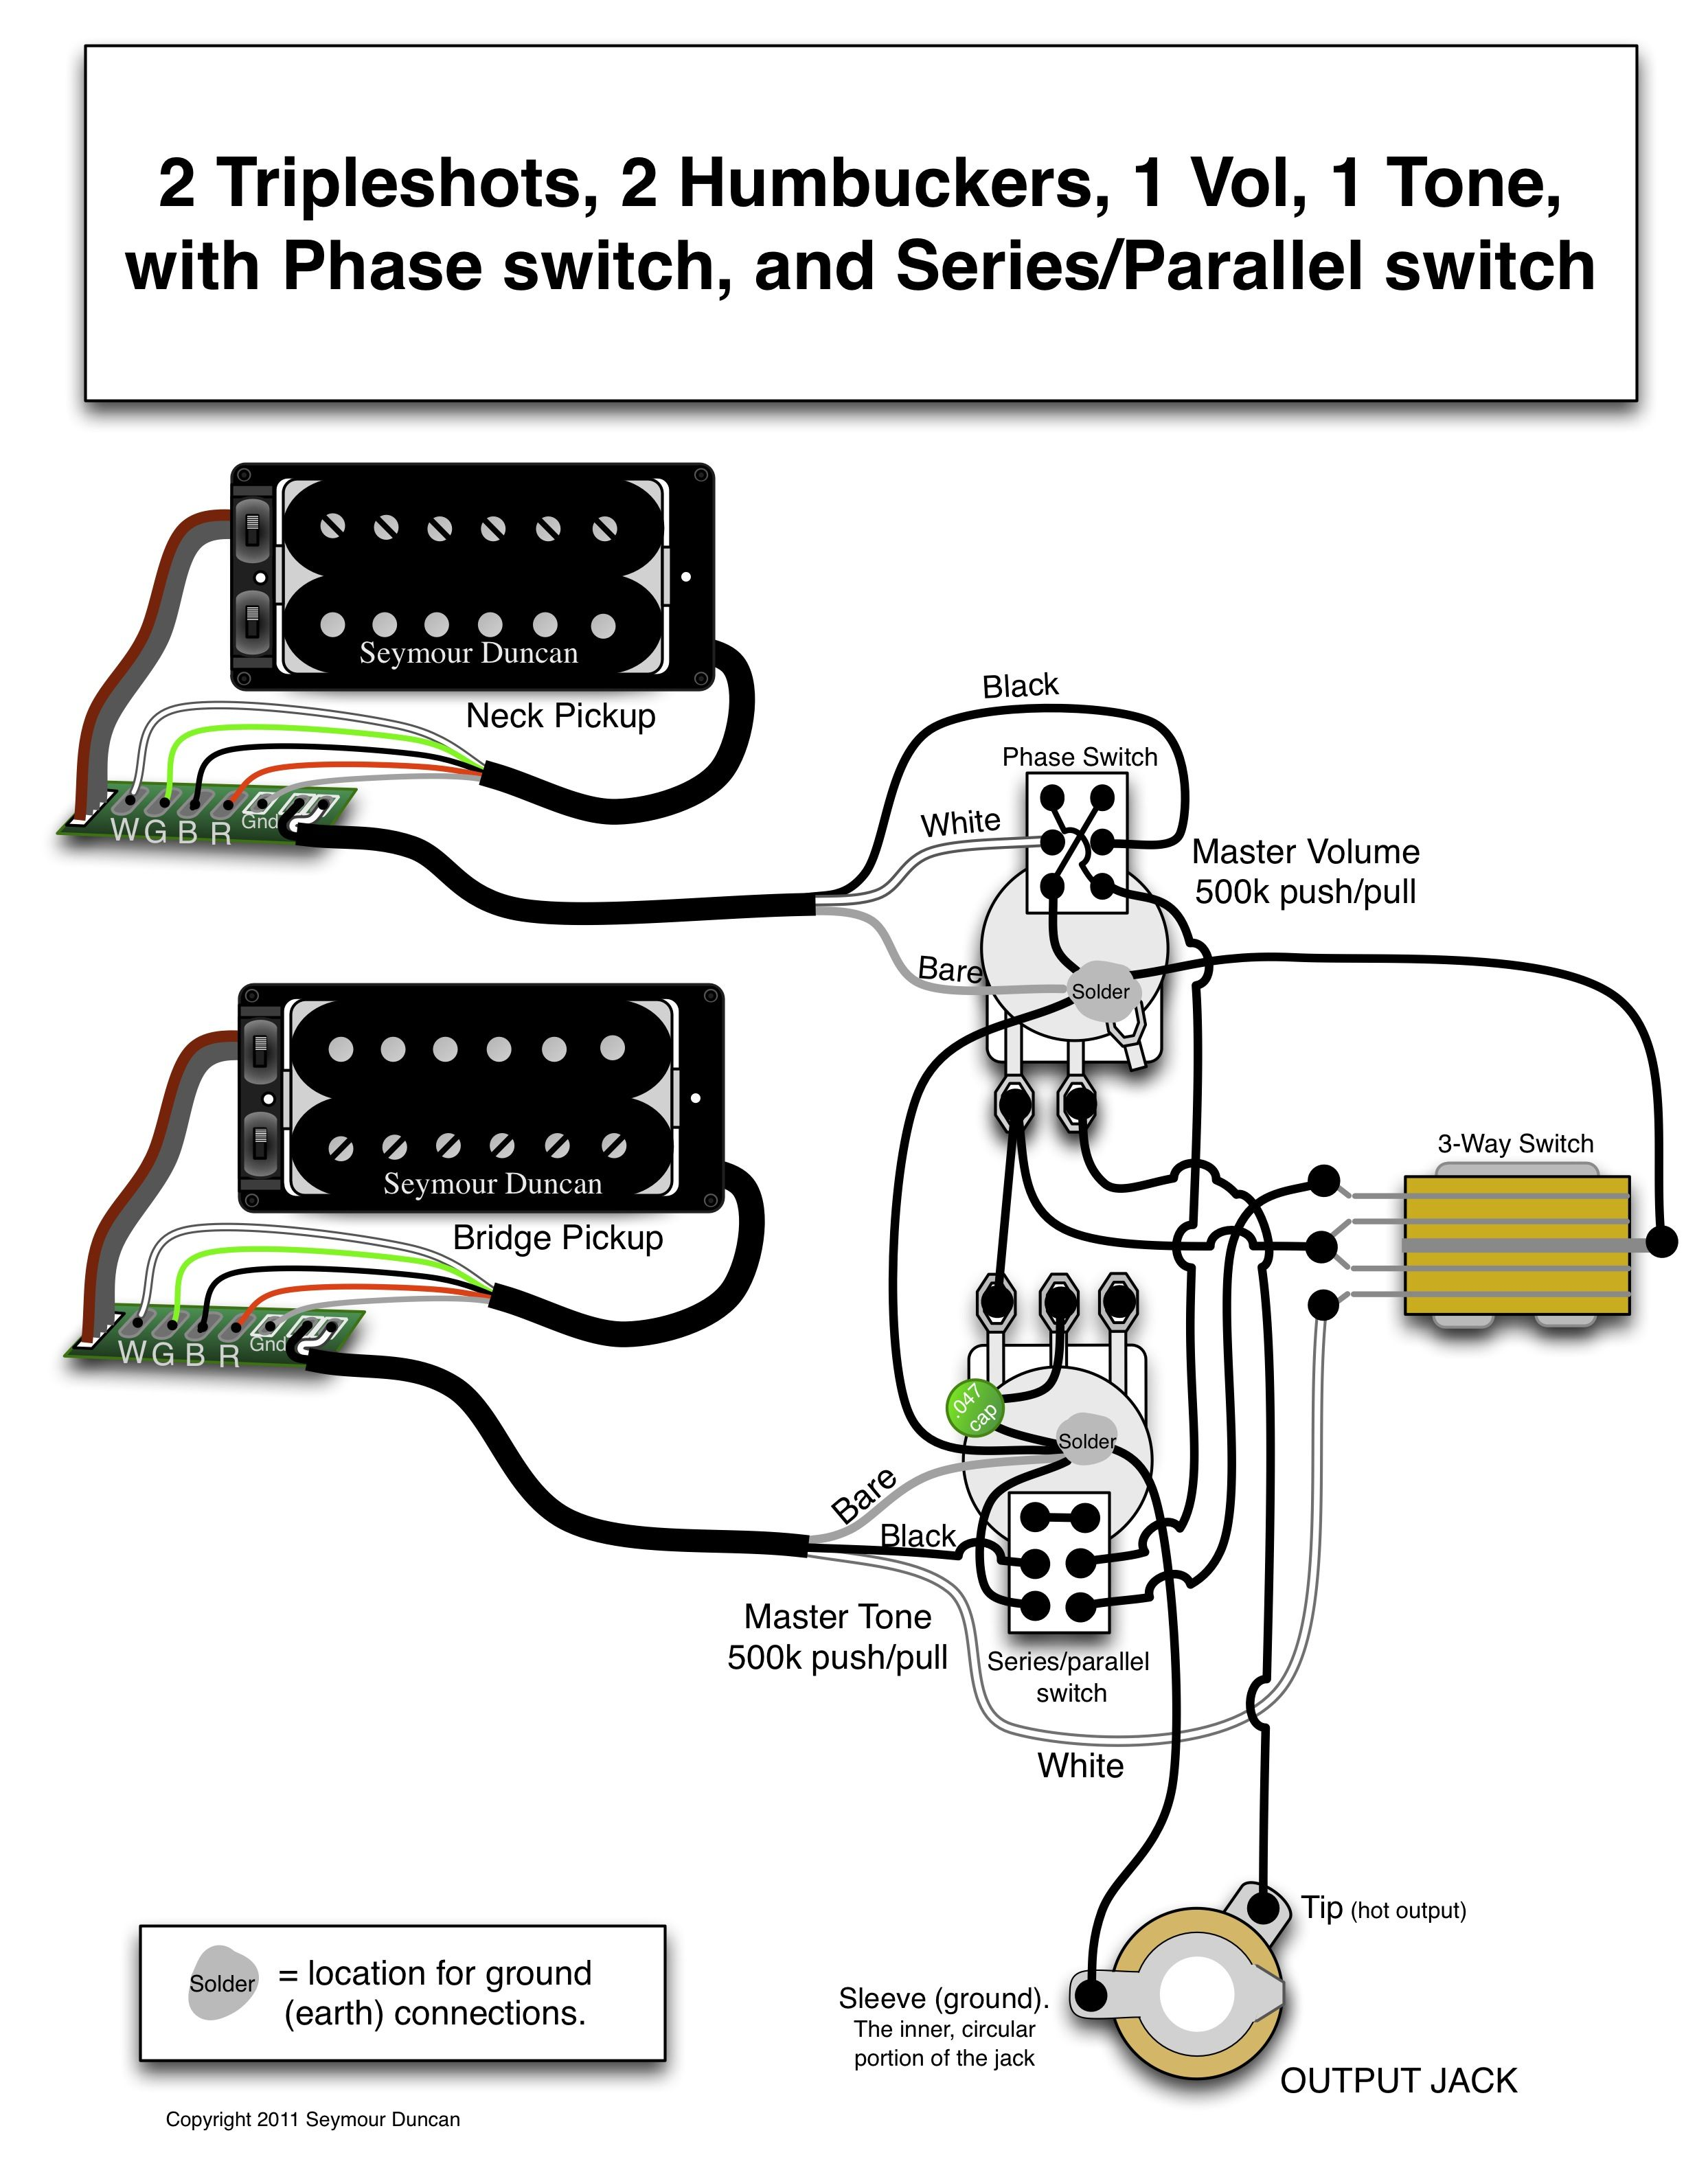 Seymour Duncan wiring diagram - 2 Triple Shots, 2 Humbuckers, 1 ...